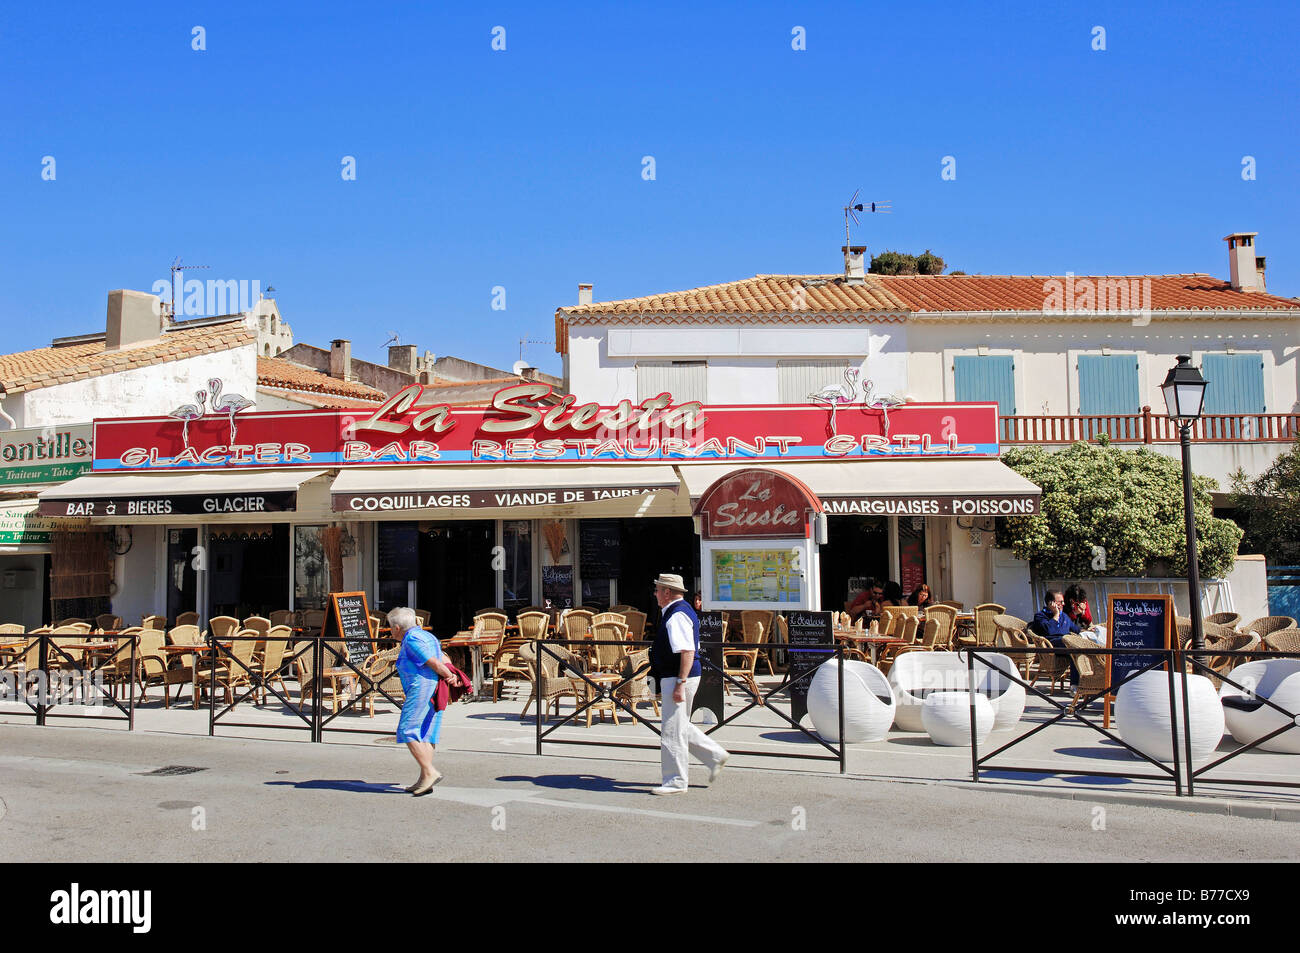 restaurant les saintes maries de la mer camargue bouches du rhone stock photo royalty free. Black Bedroom Furniture Sets. Home Design Ideas